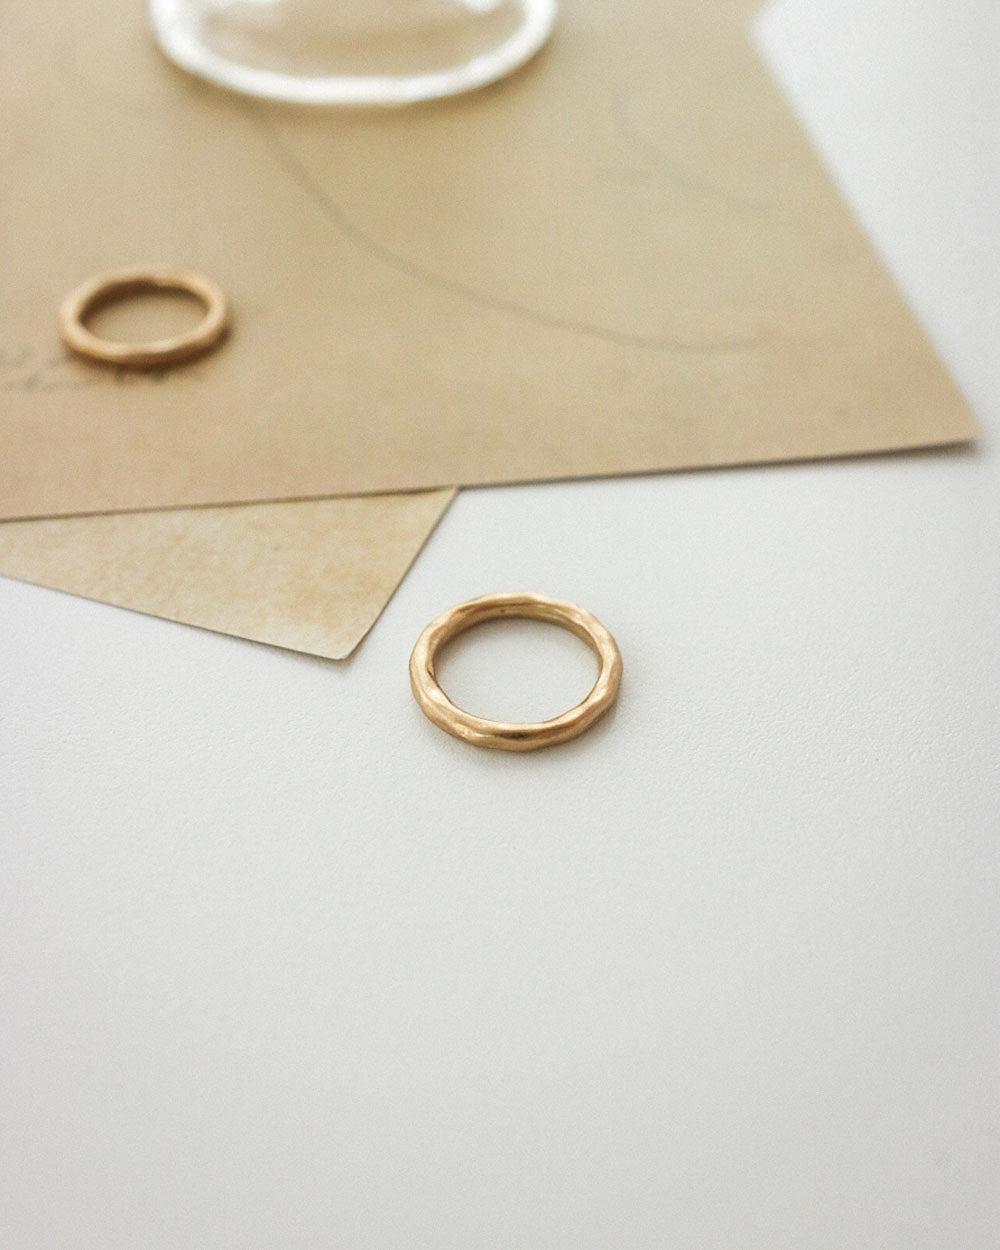 Miami Matte Ring in Gold by The Hexad